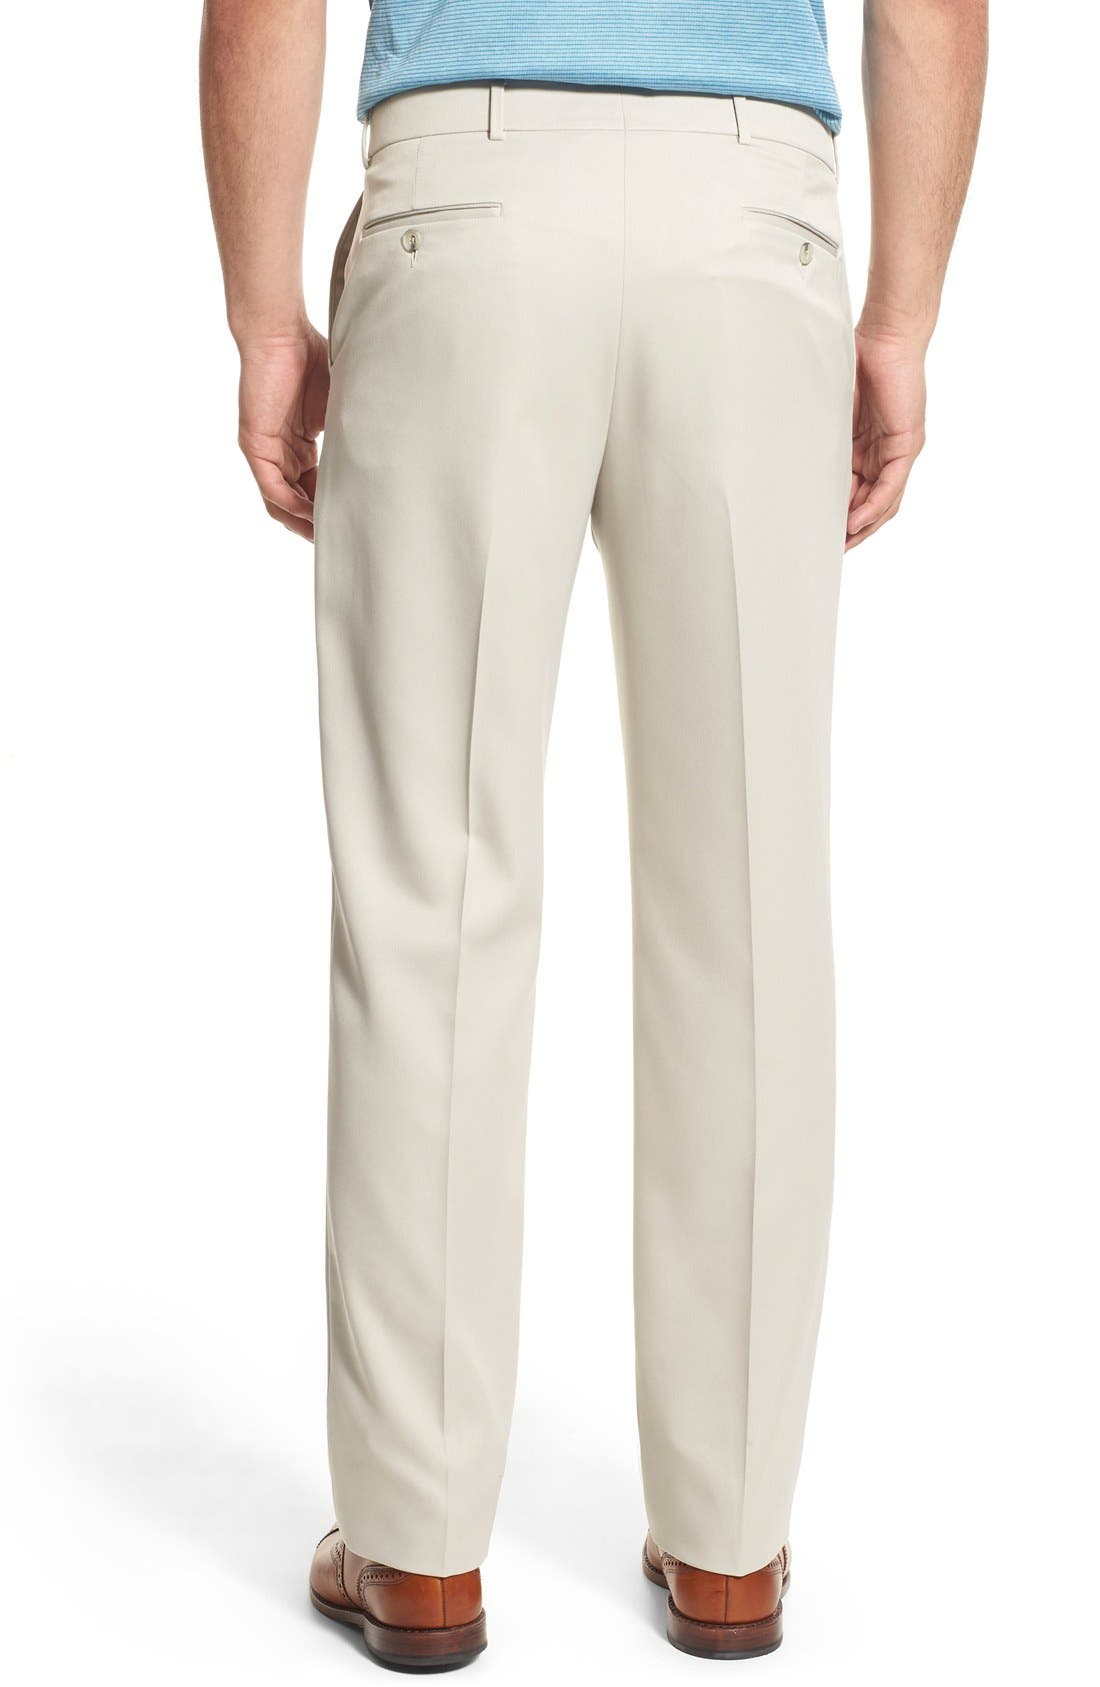 Regular Fit Flat Front Trousers,                             Alternate thumbnail 8, color,                             OYSTER